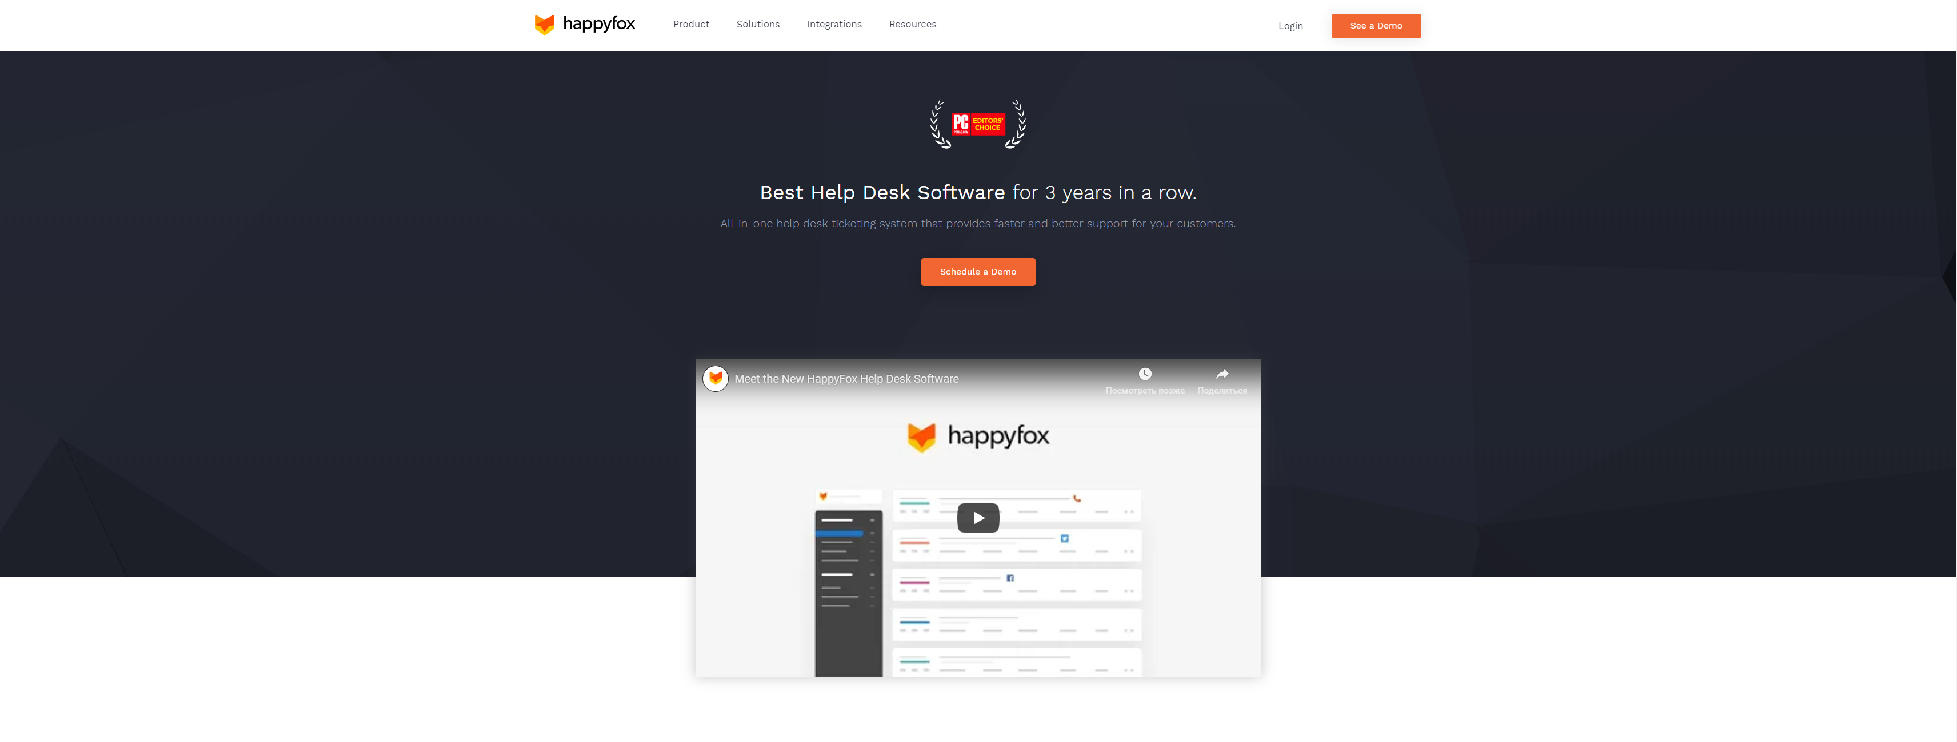 Top 11 Best Help Desk Software Solutions For Small Business